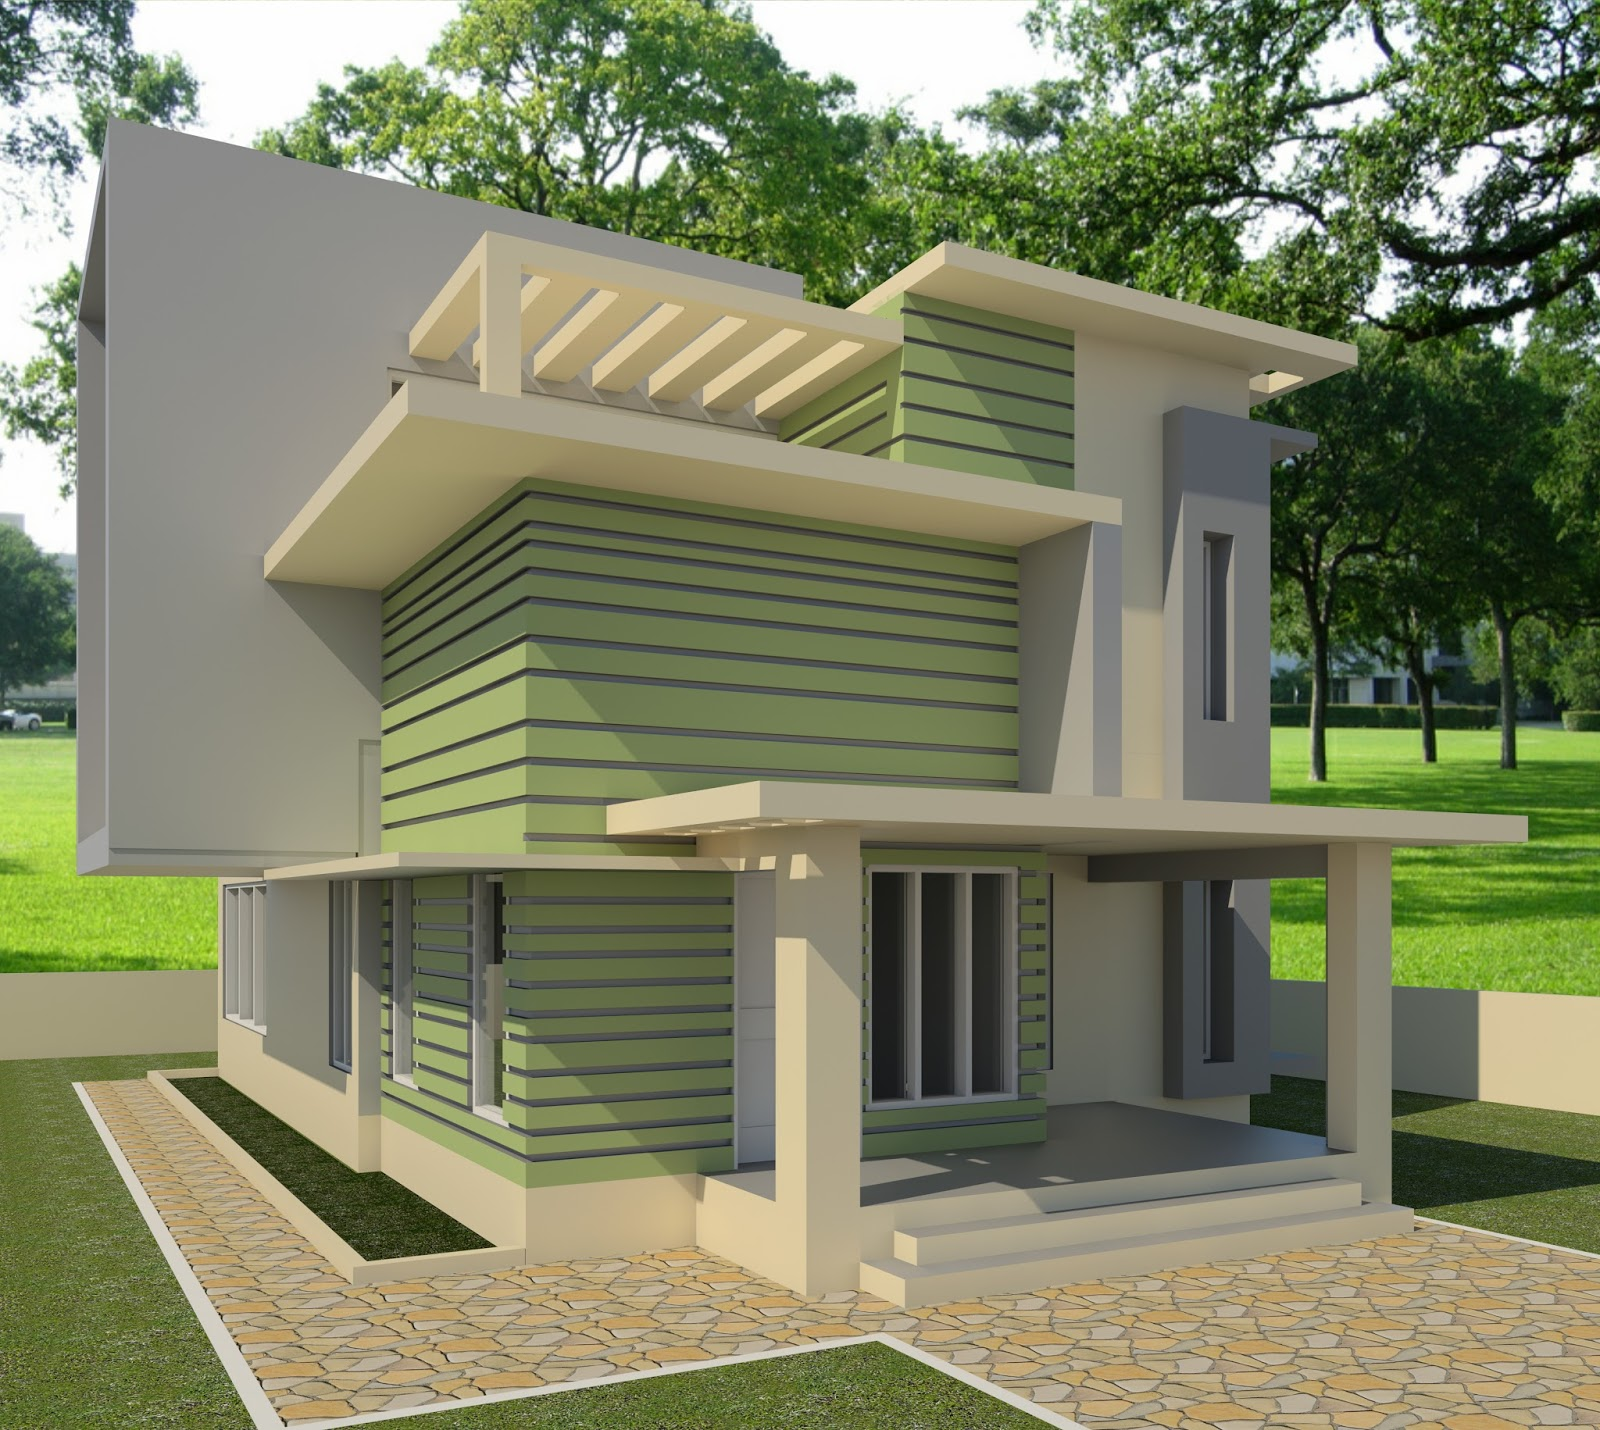 Revit architecture modern house design 7 cad needs for Revit architecture modern house design 1